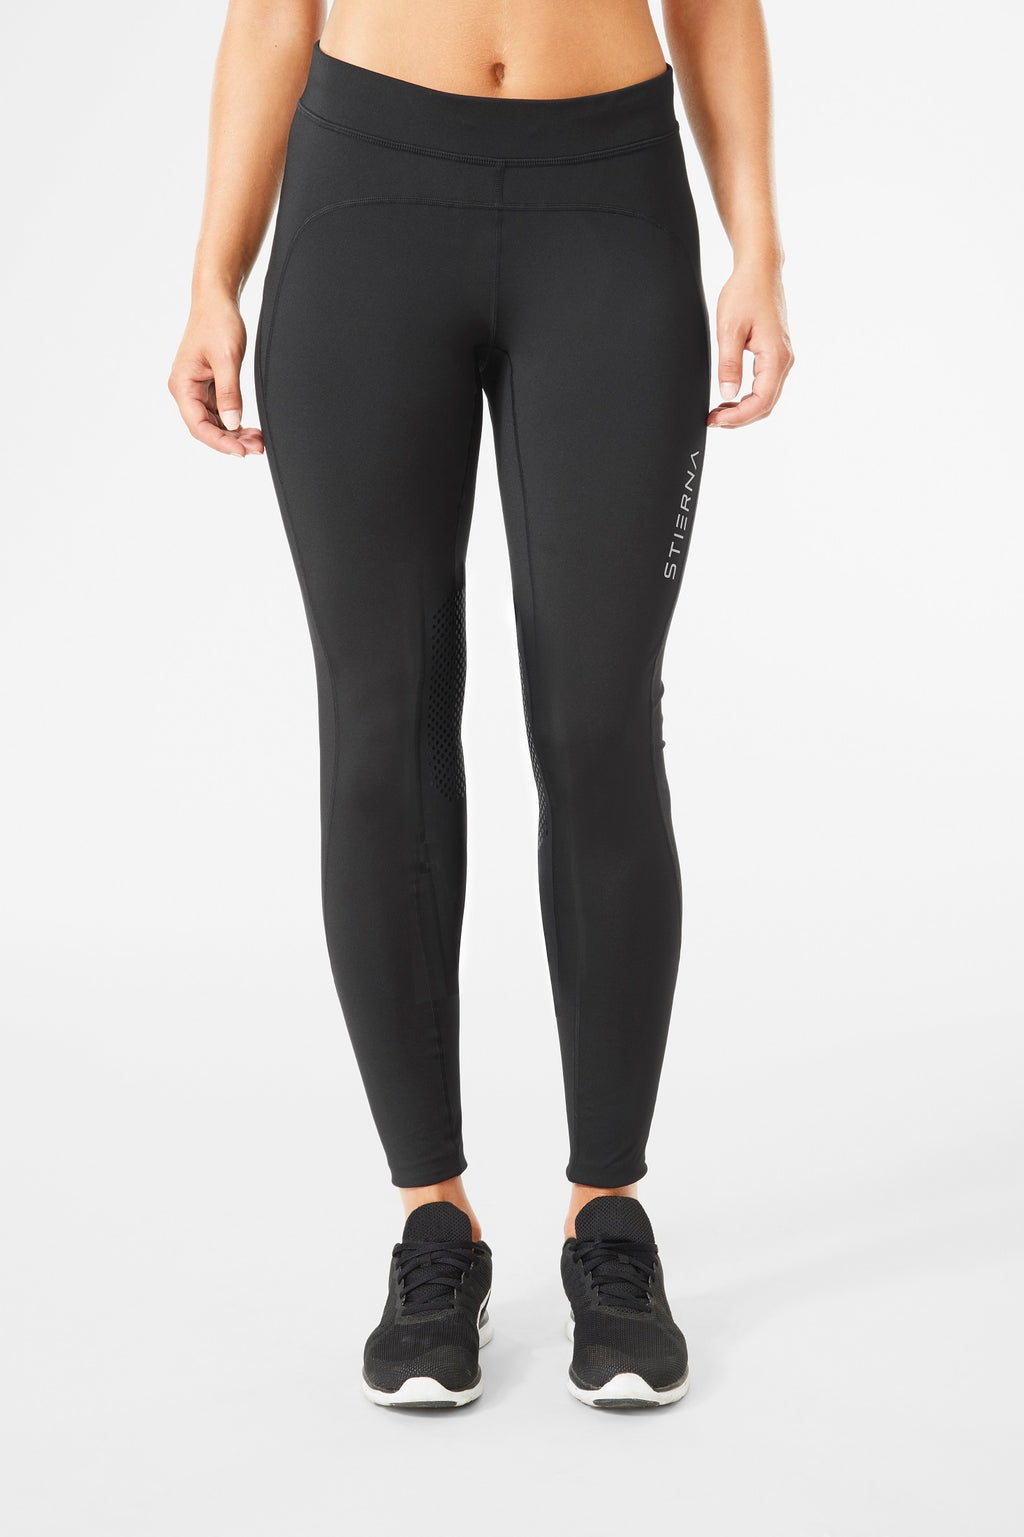 Stierna Nova Compression Riding Tights